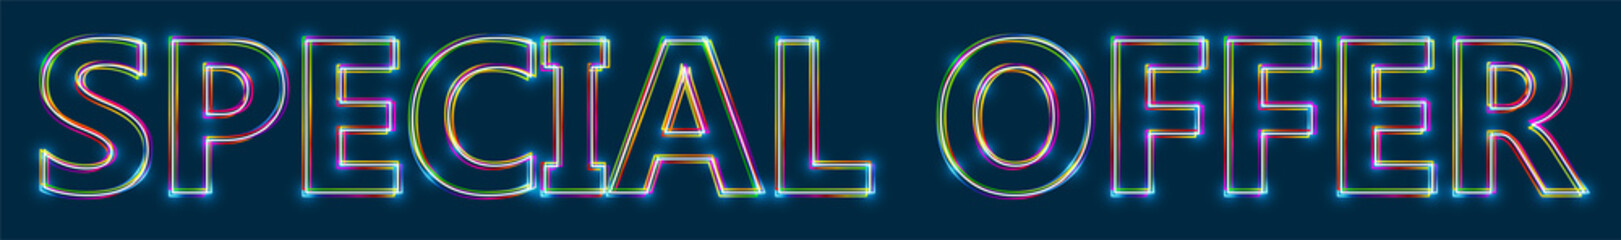 SPECIAL OFFER - Colorful multi-layered outline text with glowing light effect on blue background.